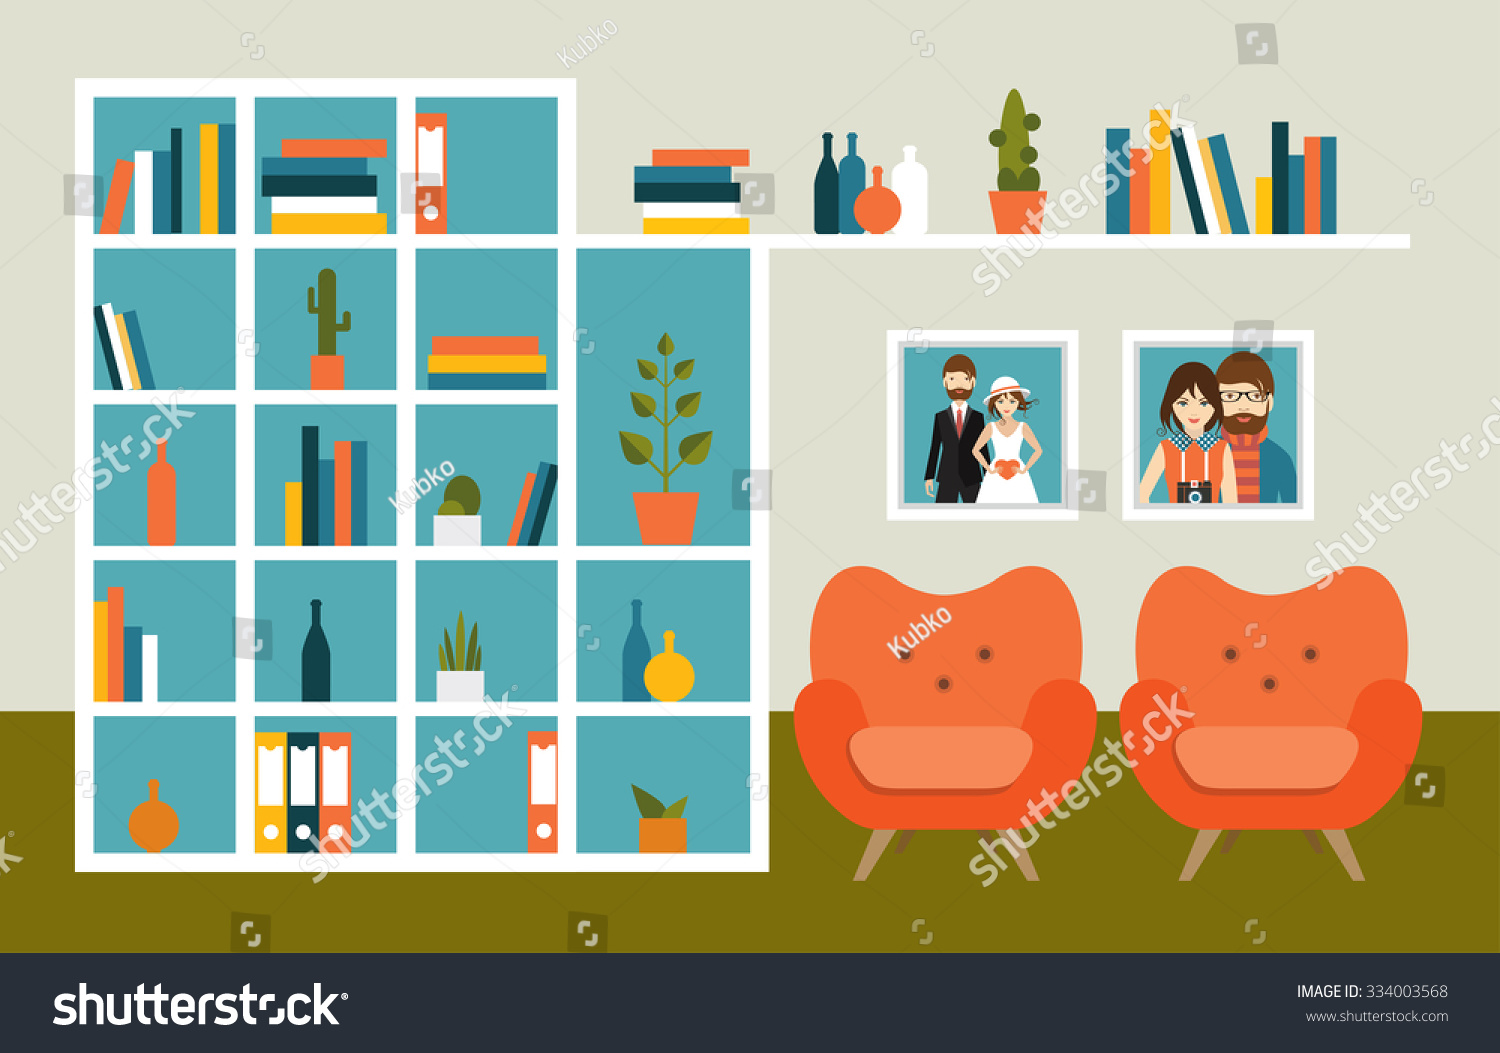 Living Room Wall With Orange Armchairs And Book Shelves